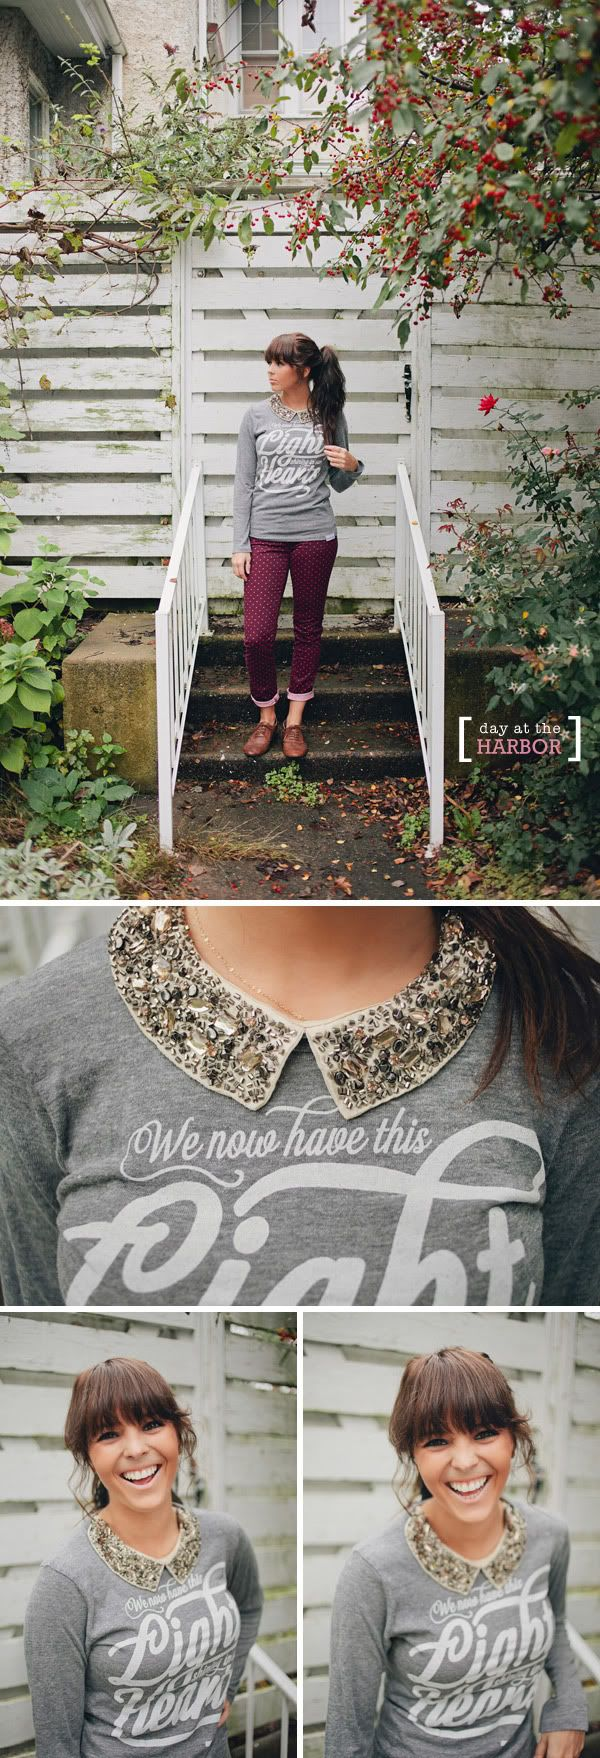 walk in love. // T-Shirt Fashion // Women's Fashion // Harbor // Day Trip // Outfit Of The Day // How To Wear It // Collar // Chunky Necklace // Long Hair // Pony Tail